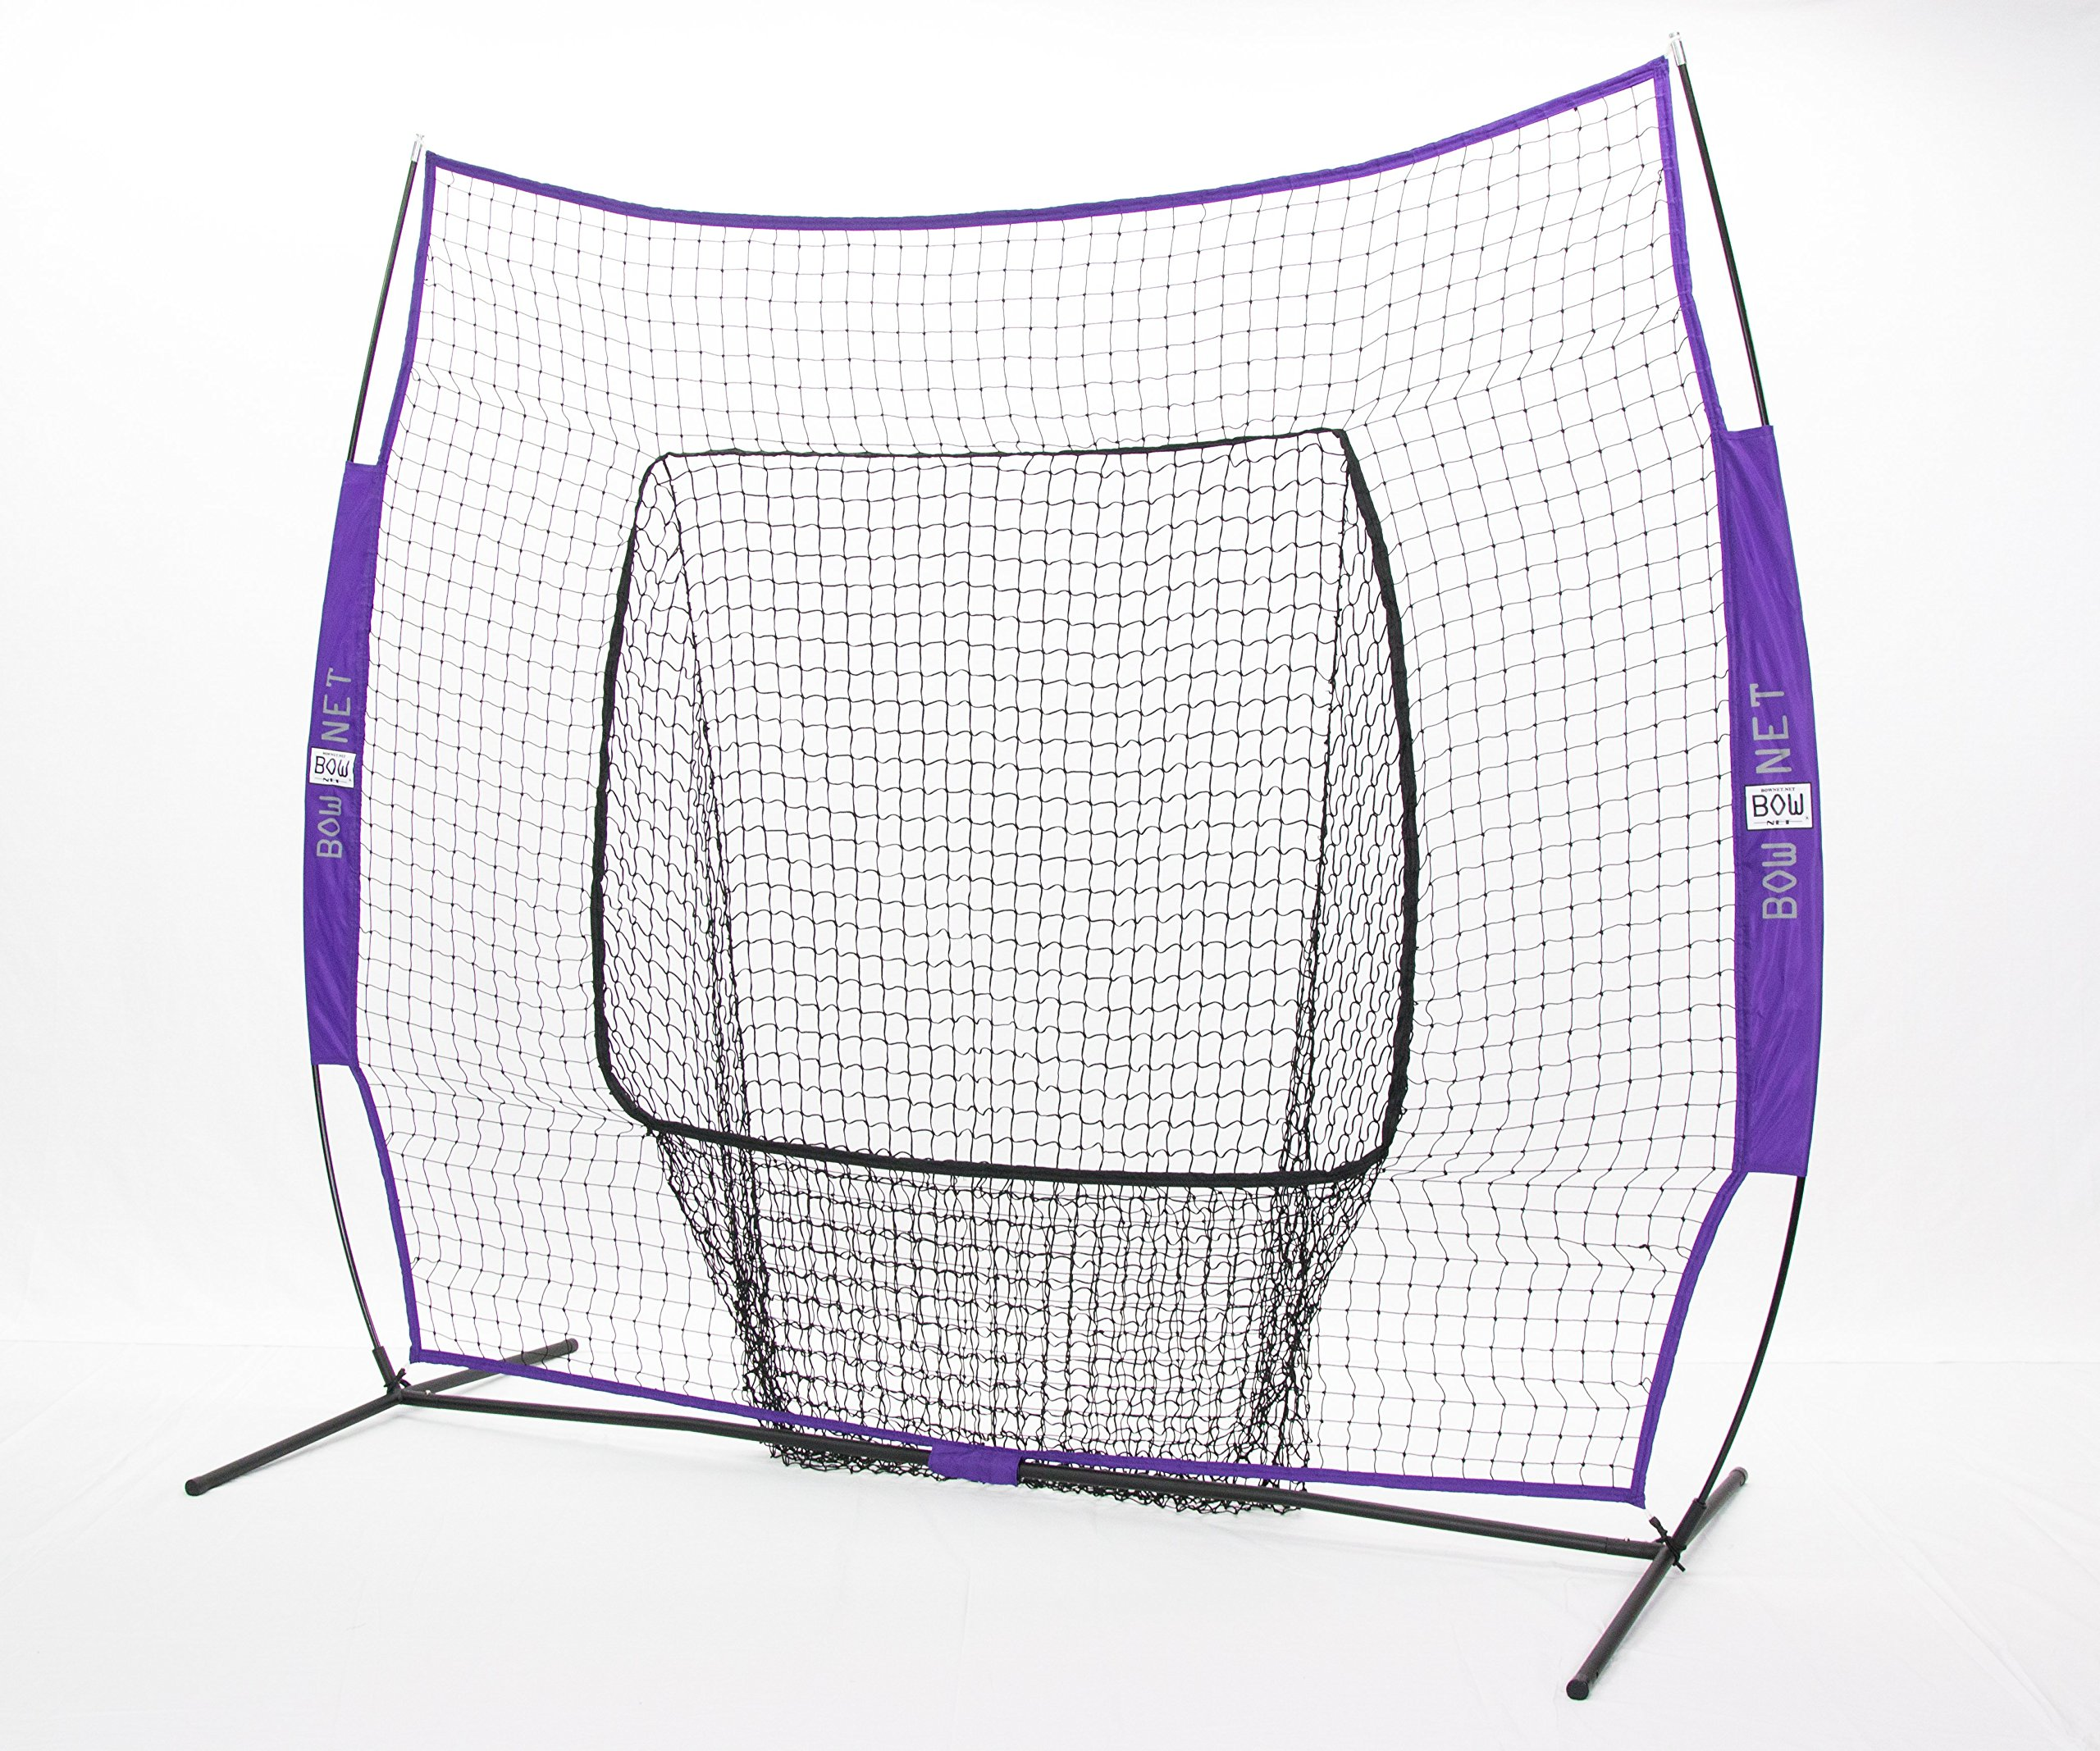 Bownet Big Mouth Colors 7' x 7' Portable Training Net with Frame, Purple